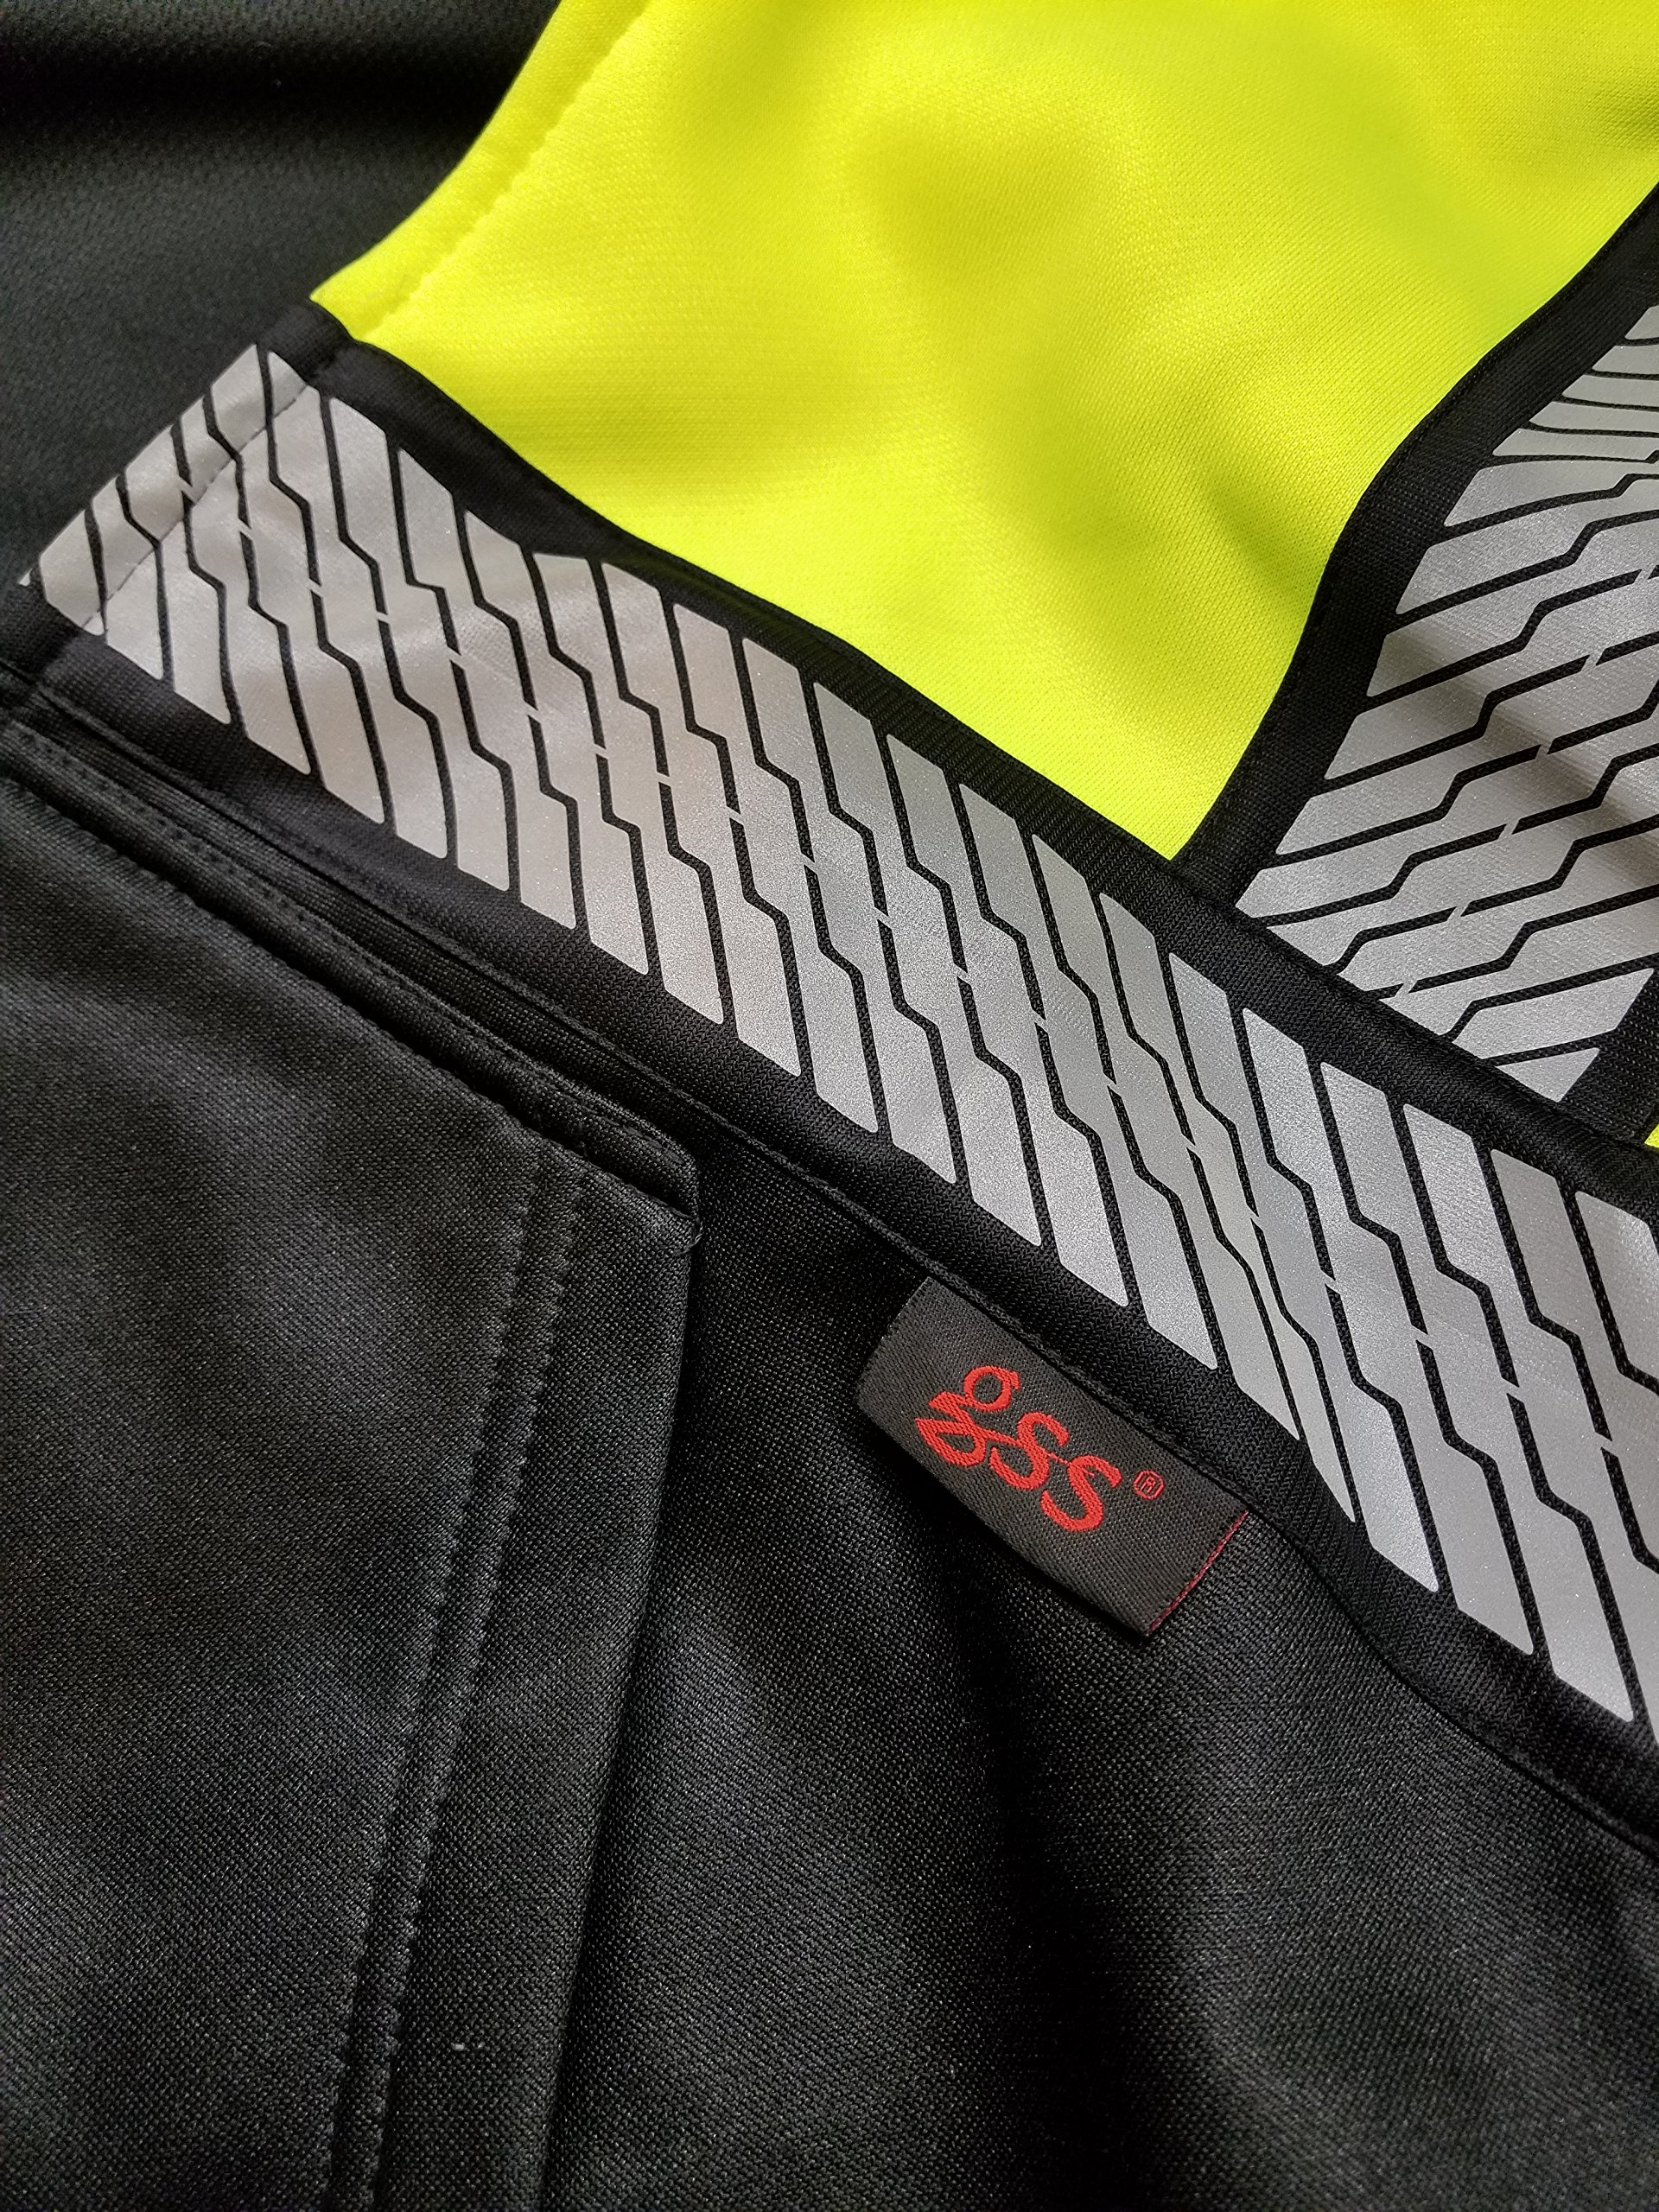 High Vis Lime Green and black Class 3 Heavyweight Premium ONYX Hoodie Sweatshirt with black trim and reflective tape (XXL) by GSS SAFETY (Image #2)